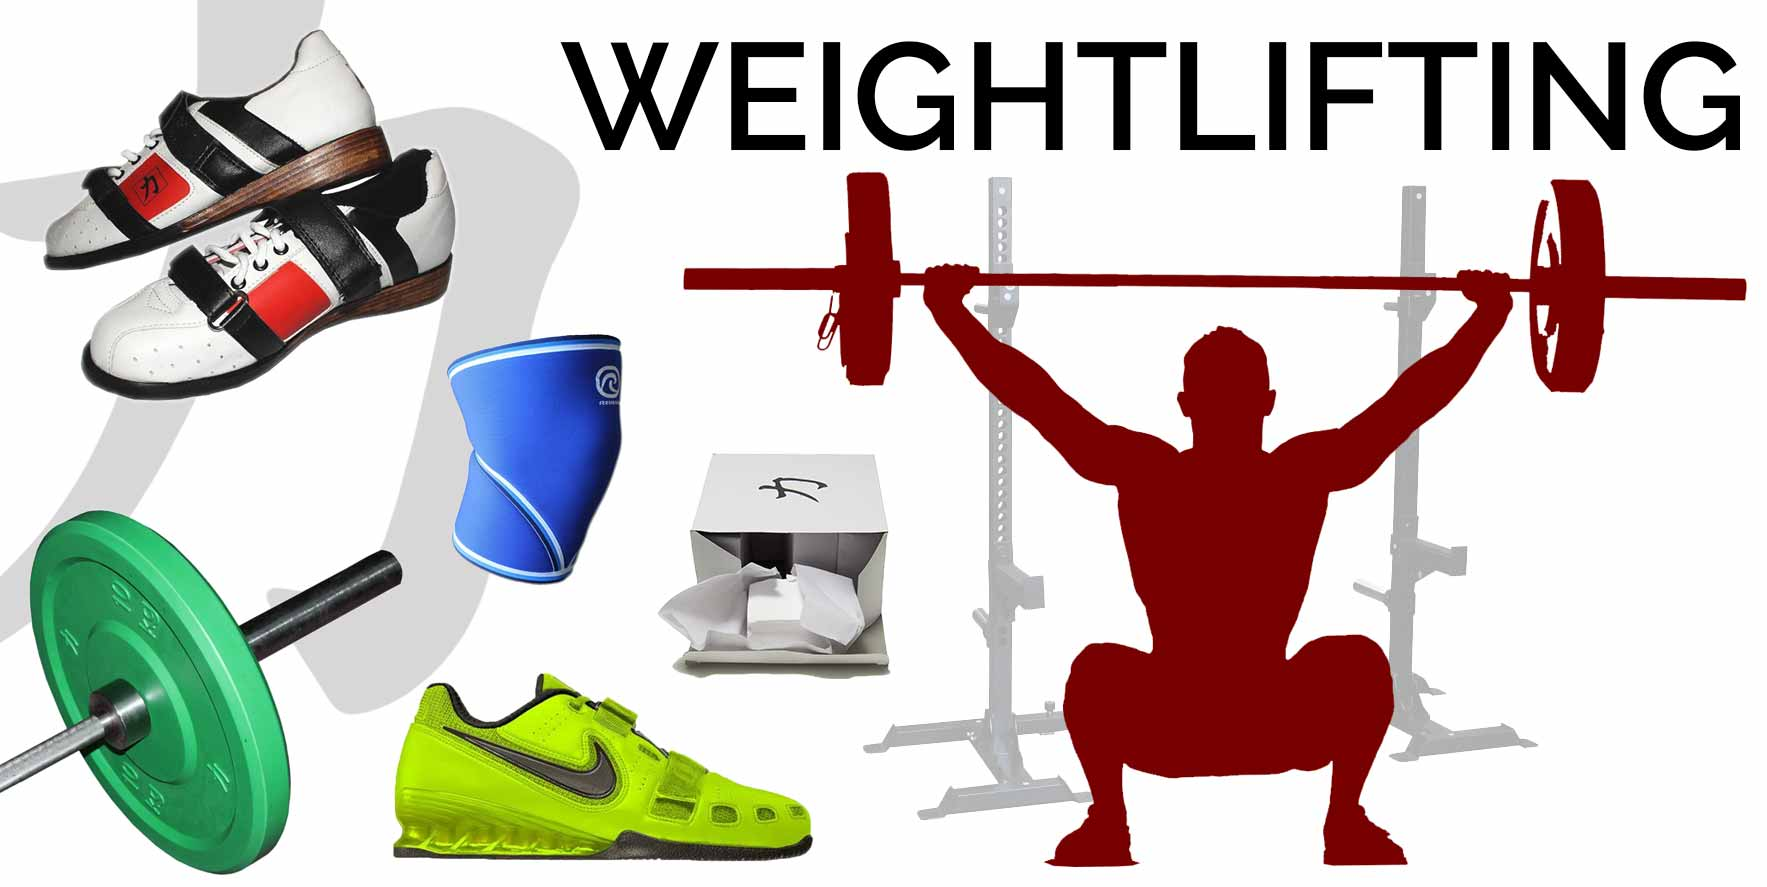 Strength Shop Weightlifting Equipment